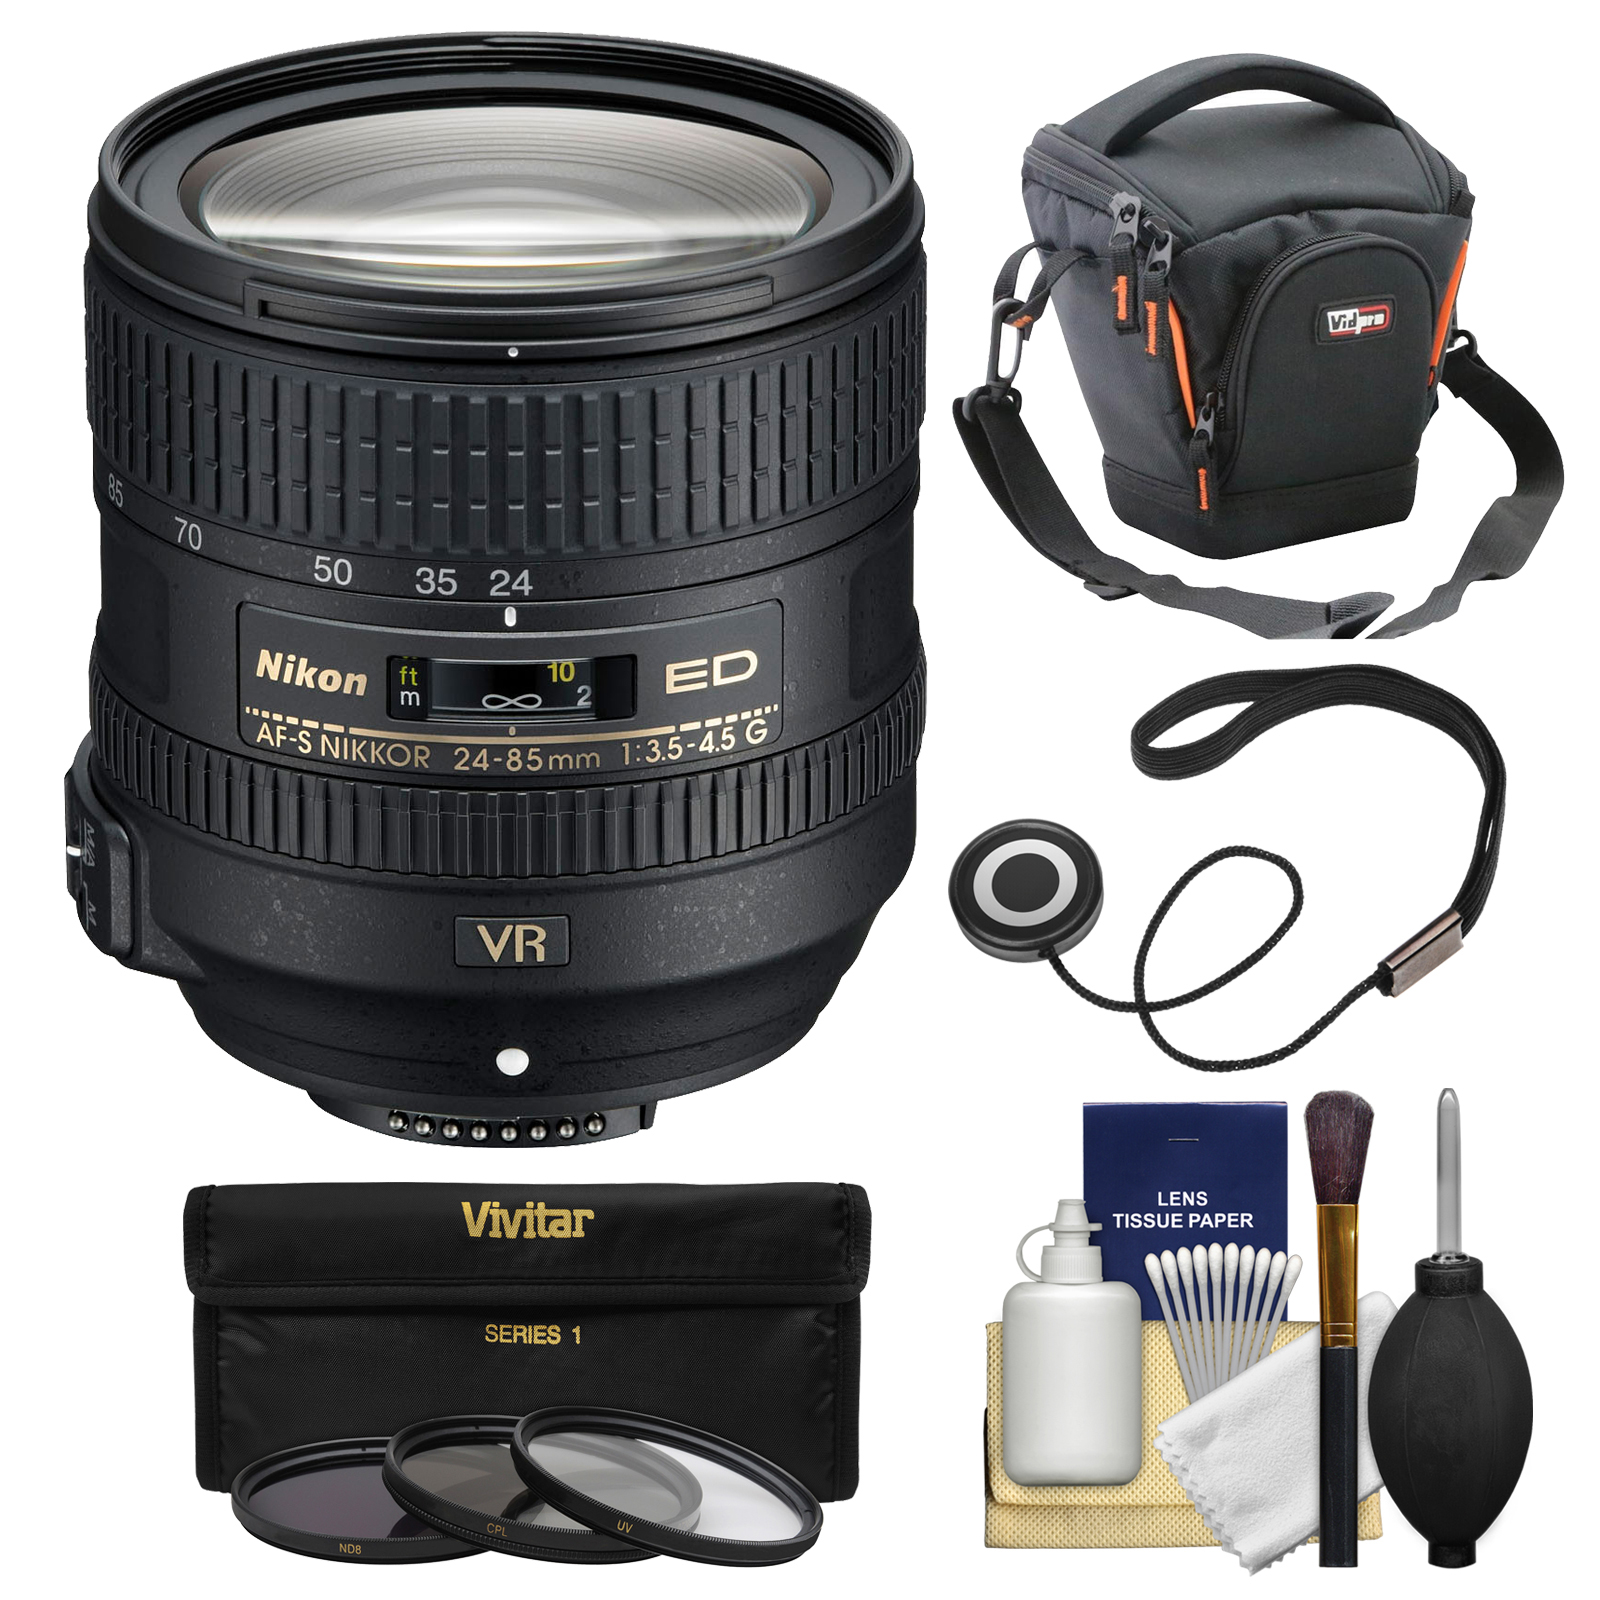 Nikon 24-85mm f/3.5-4.5G VR ED AF-S Nikkor-Zoom Lens + Case + 3 Filters Kit for D3200, D3300, D5300, D5500, D7100, D7200, D750, D810 Cameras